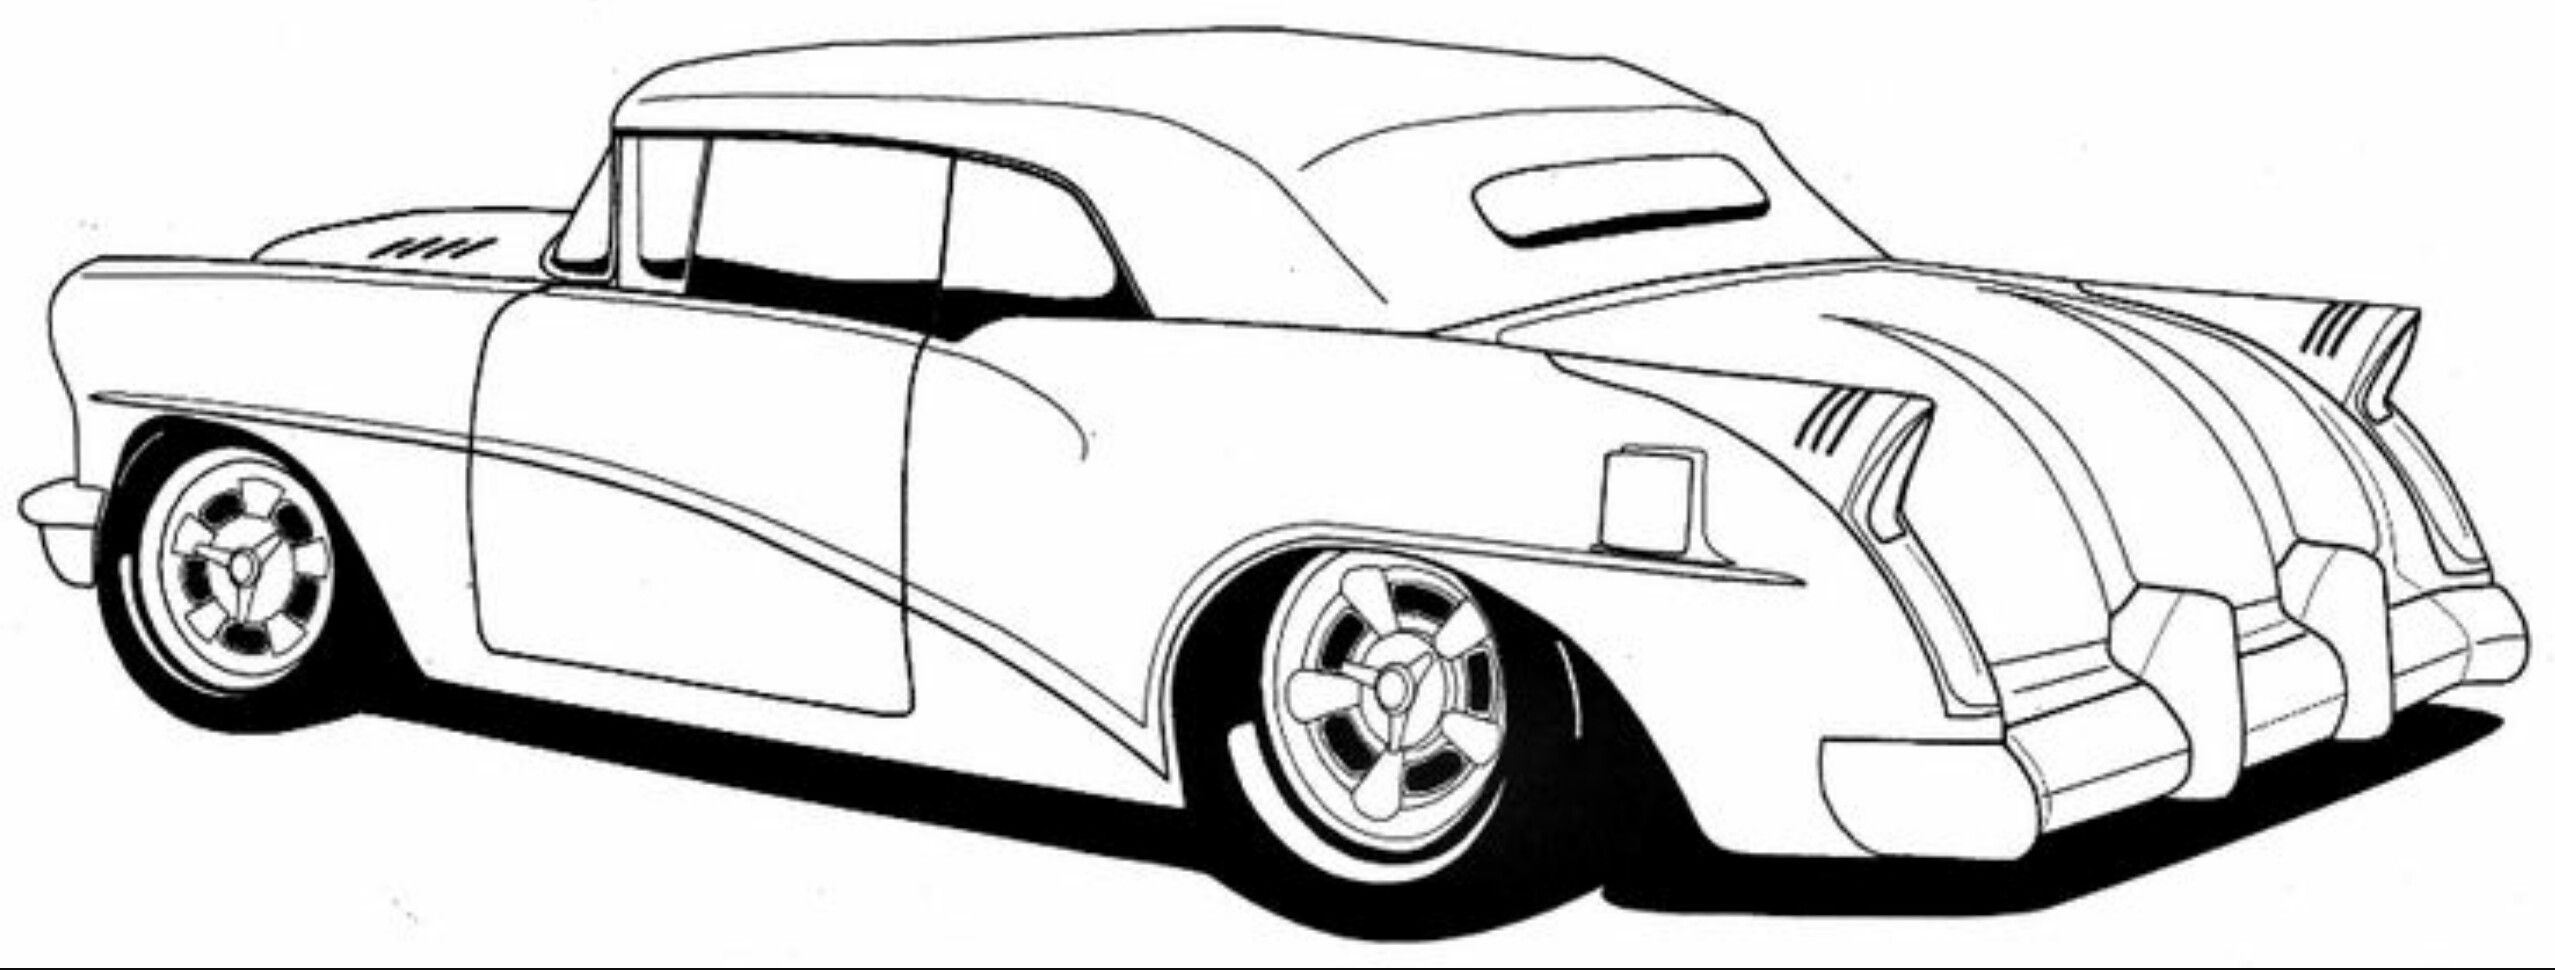 classic car coloring pages cars my coloring land classic coloring pages car